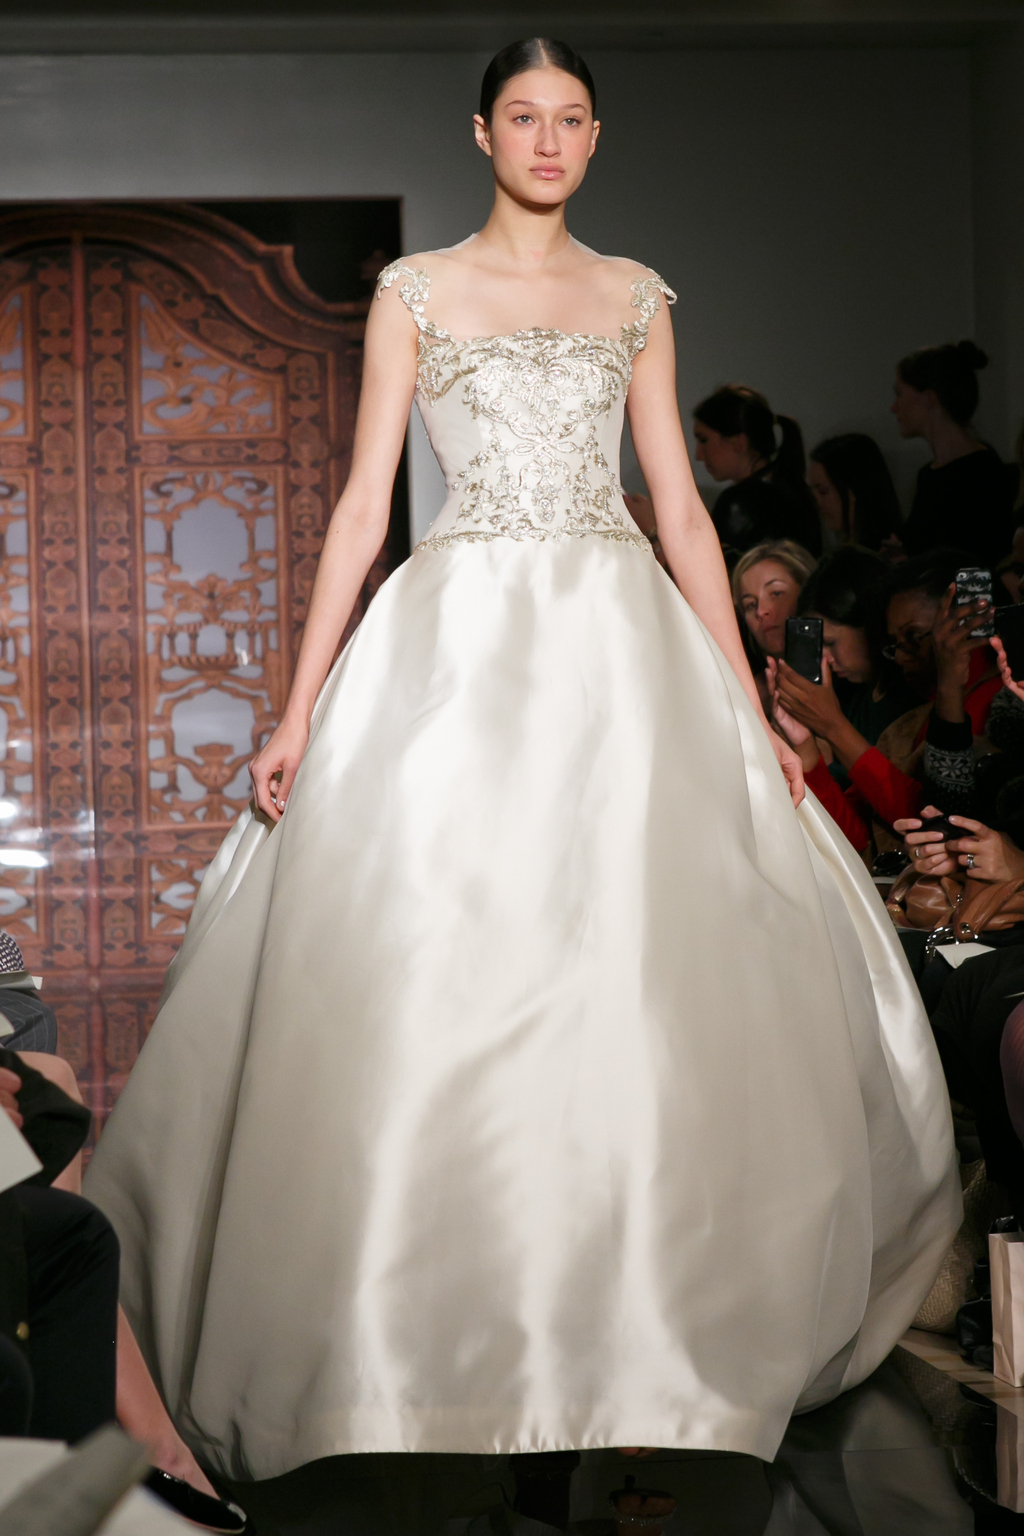 Reem-acra-wedding-dress-fall-2013-bridal-natasha-magic-moment-f.full